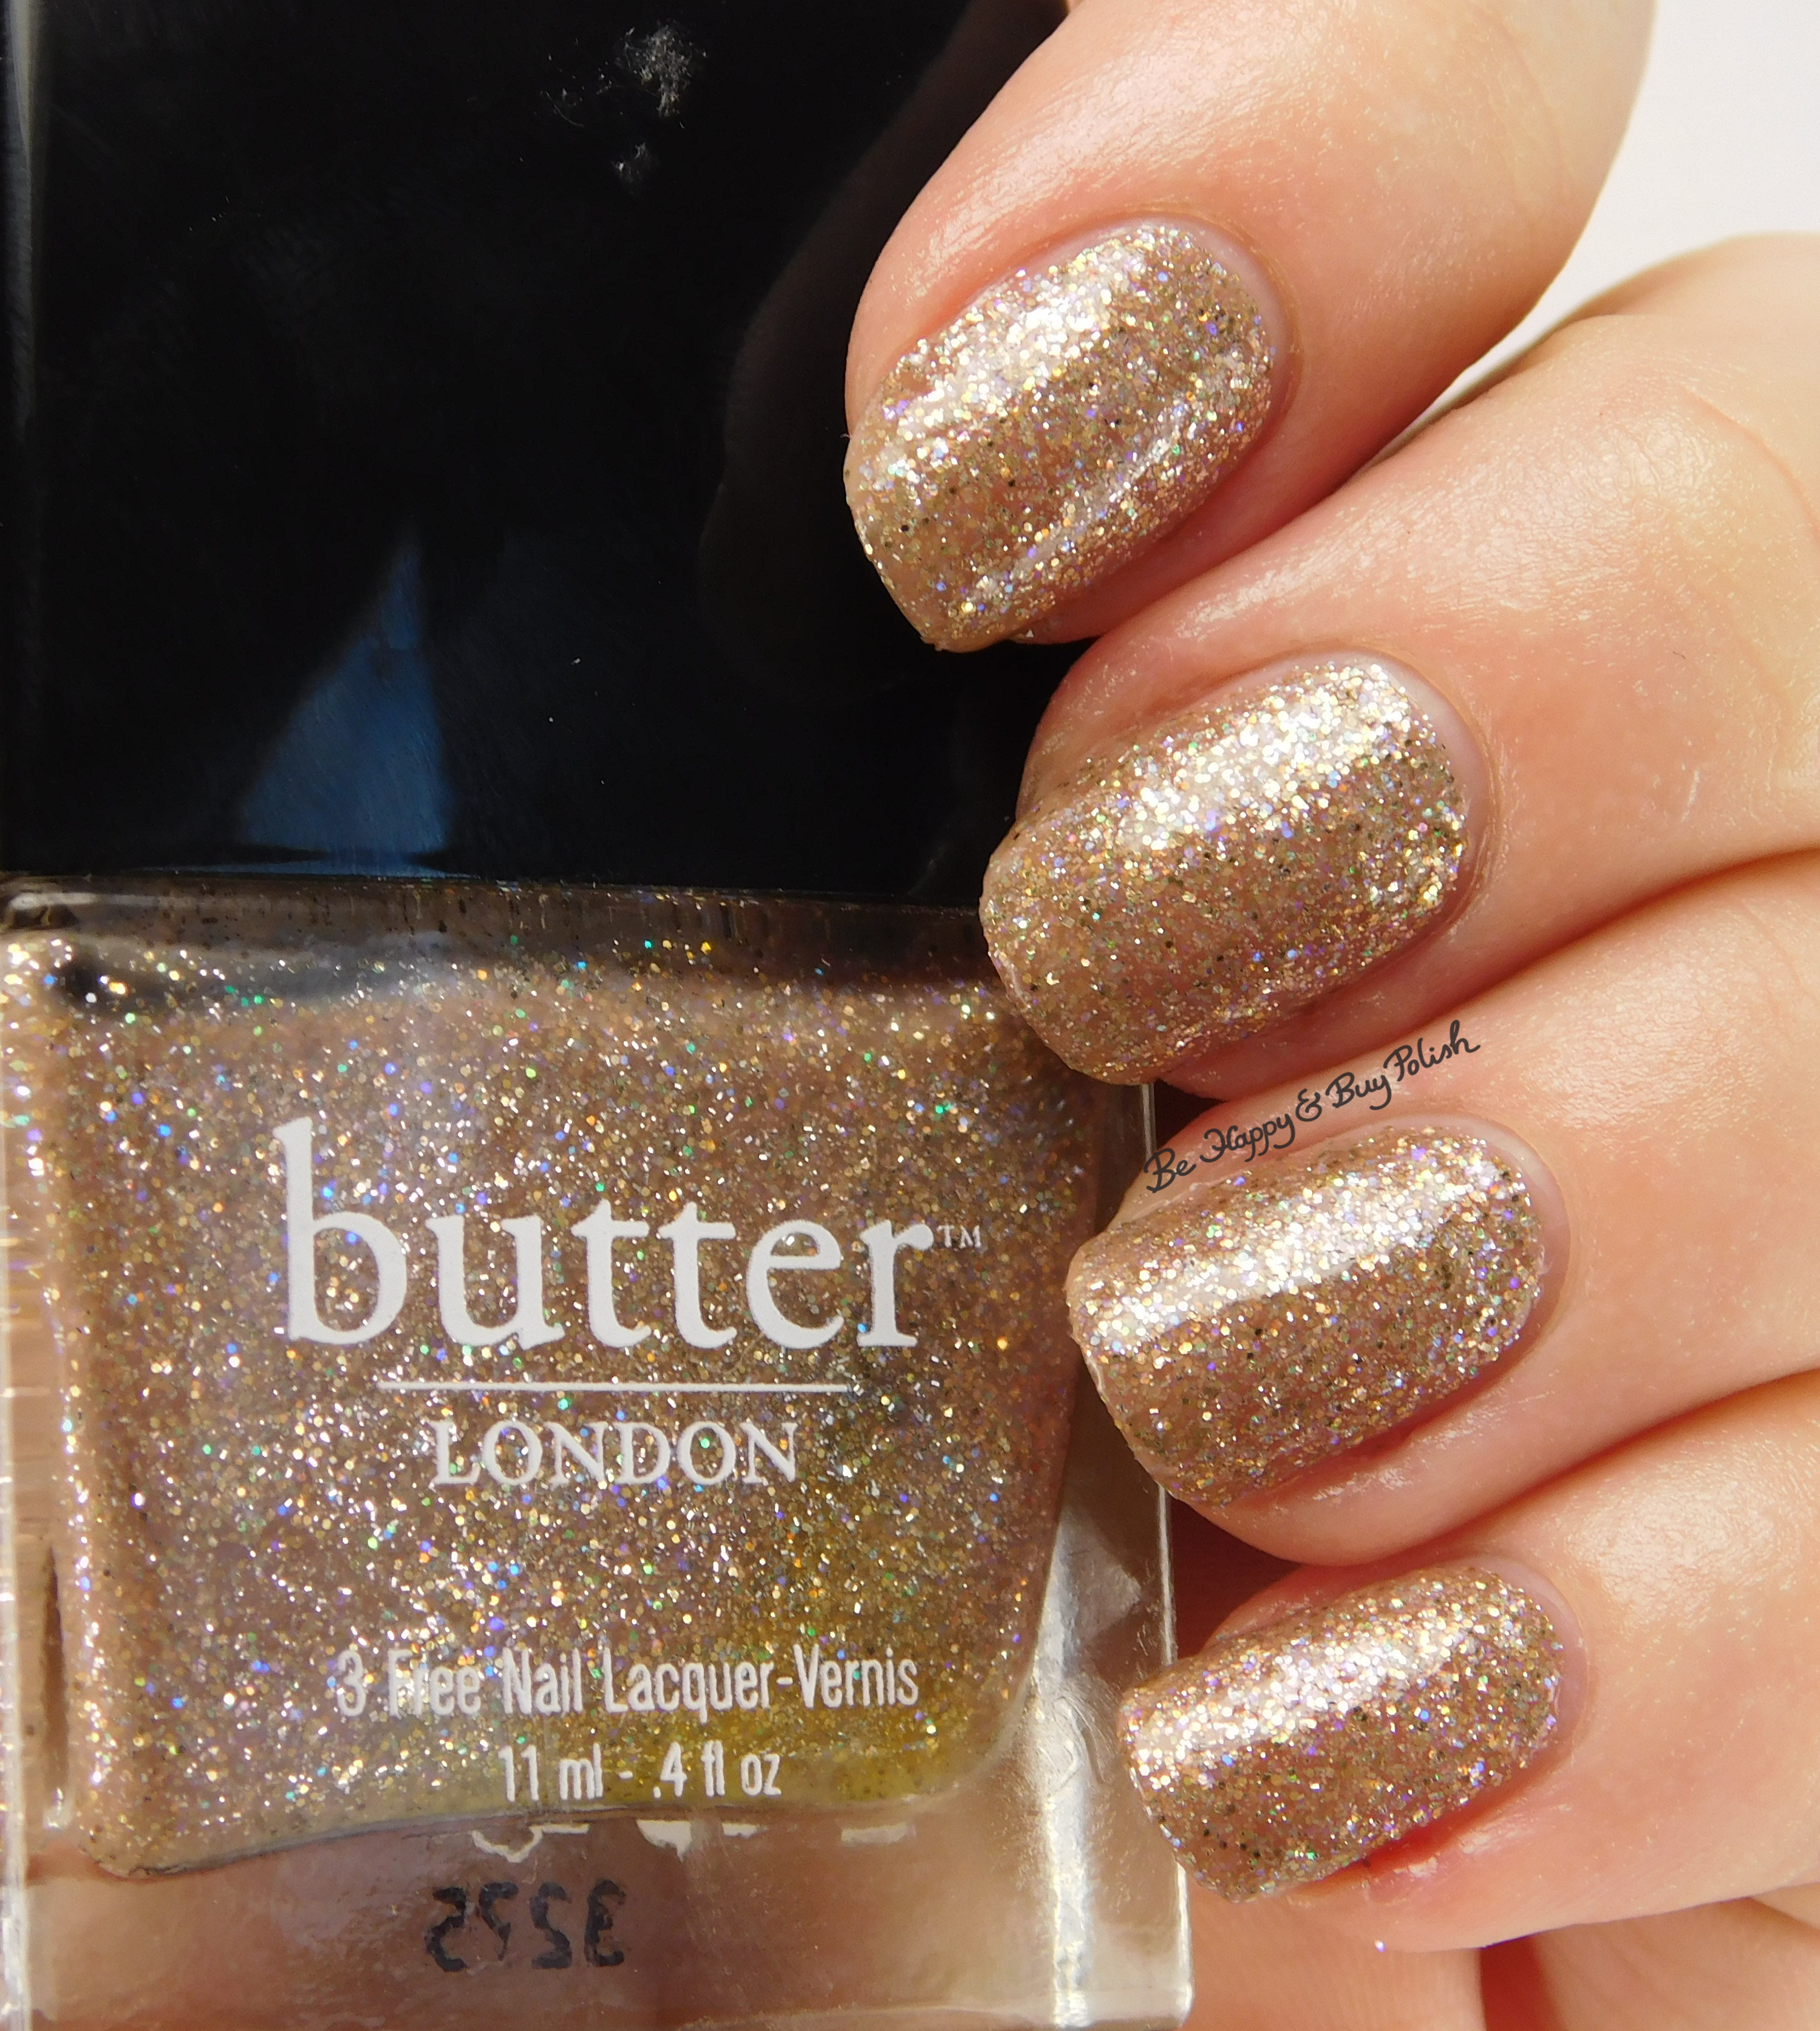 butter LONDON Lucy in the Sky nail polish swatch + review | Be Happy ...